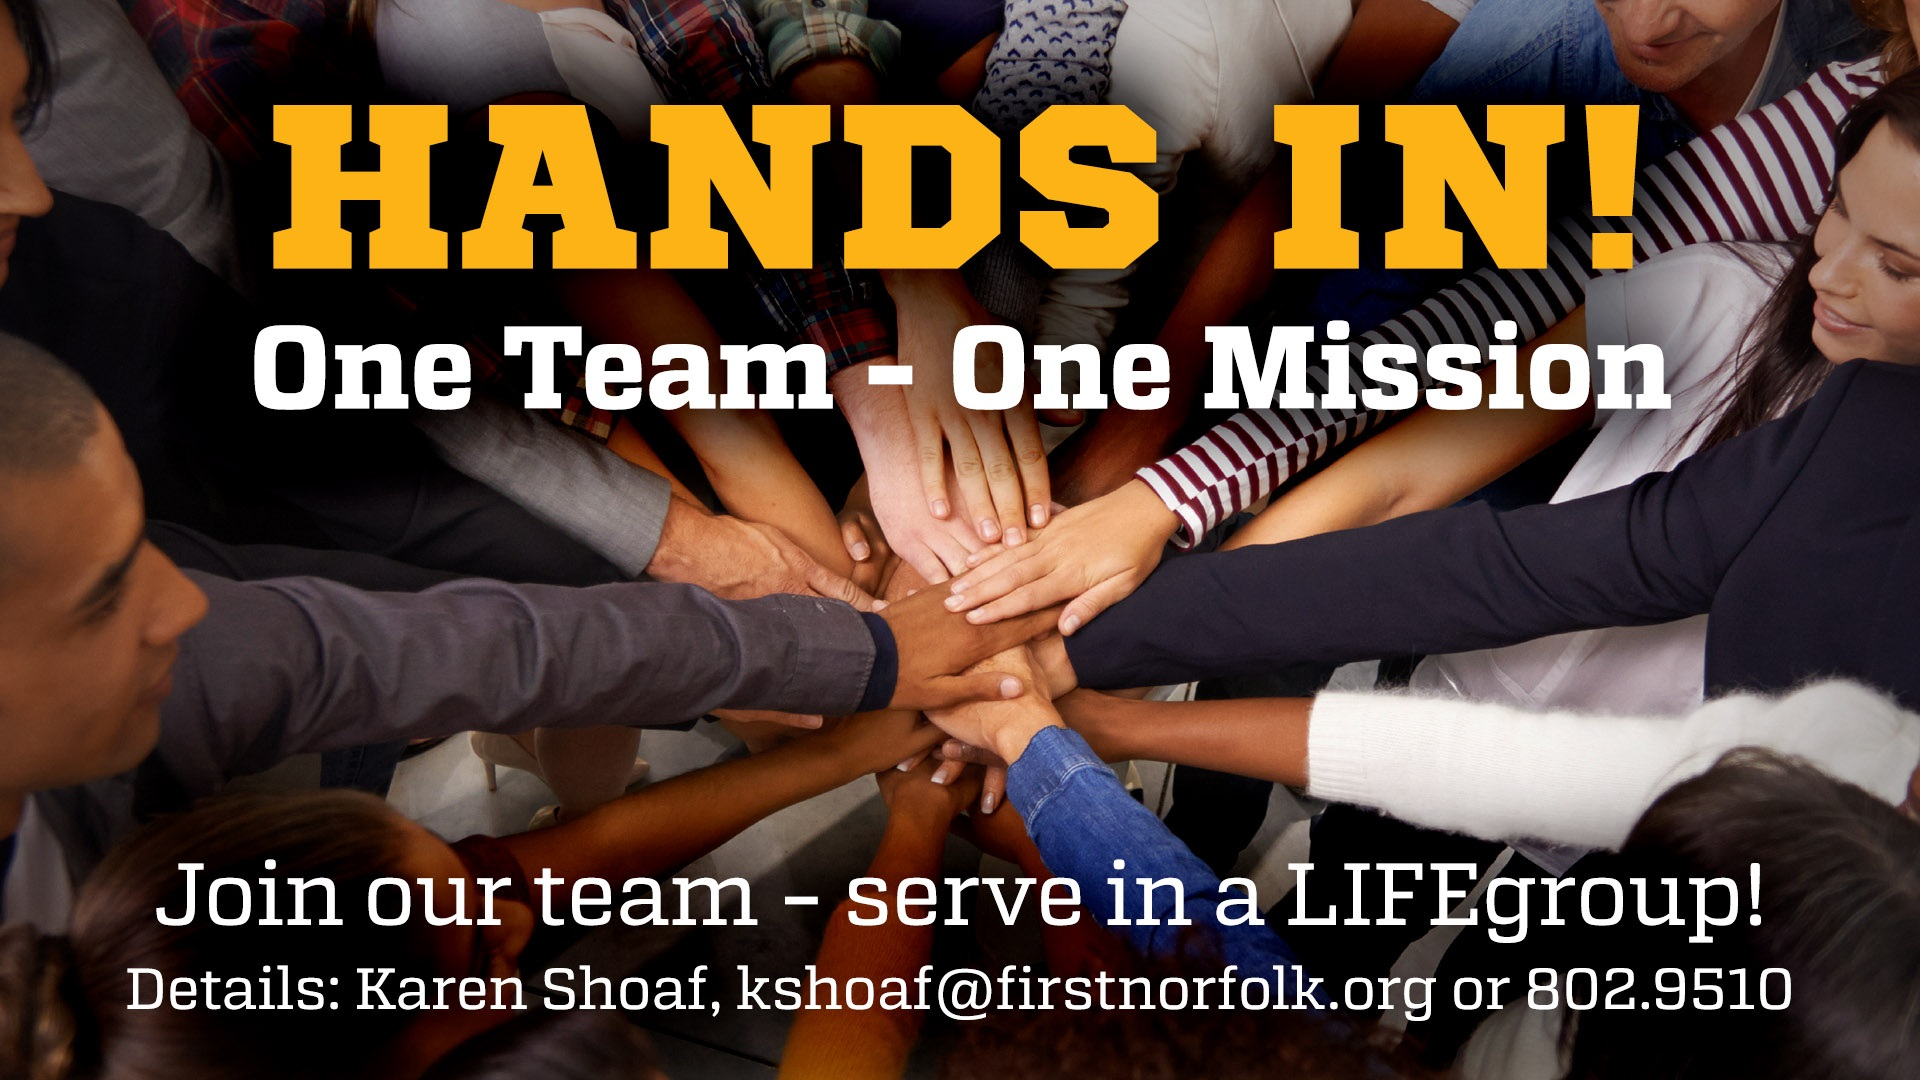 Hands in lifegroup recruitment 2017 slide contact